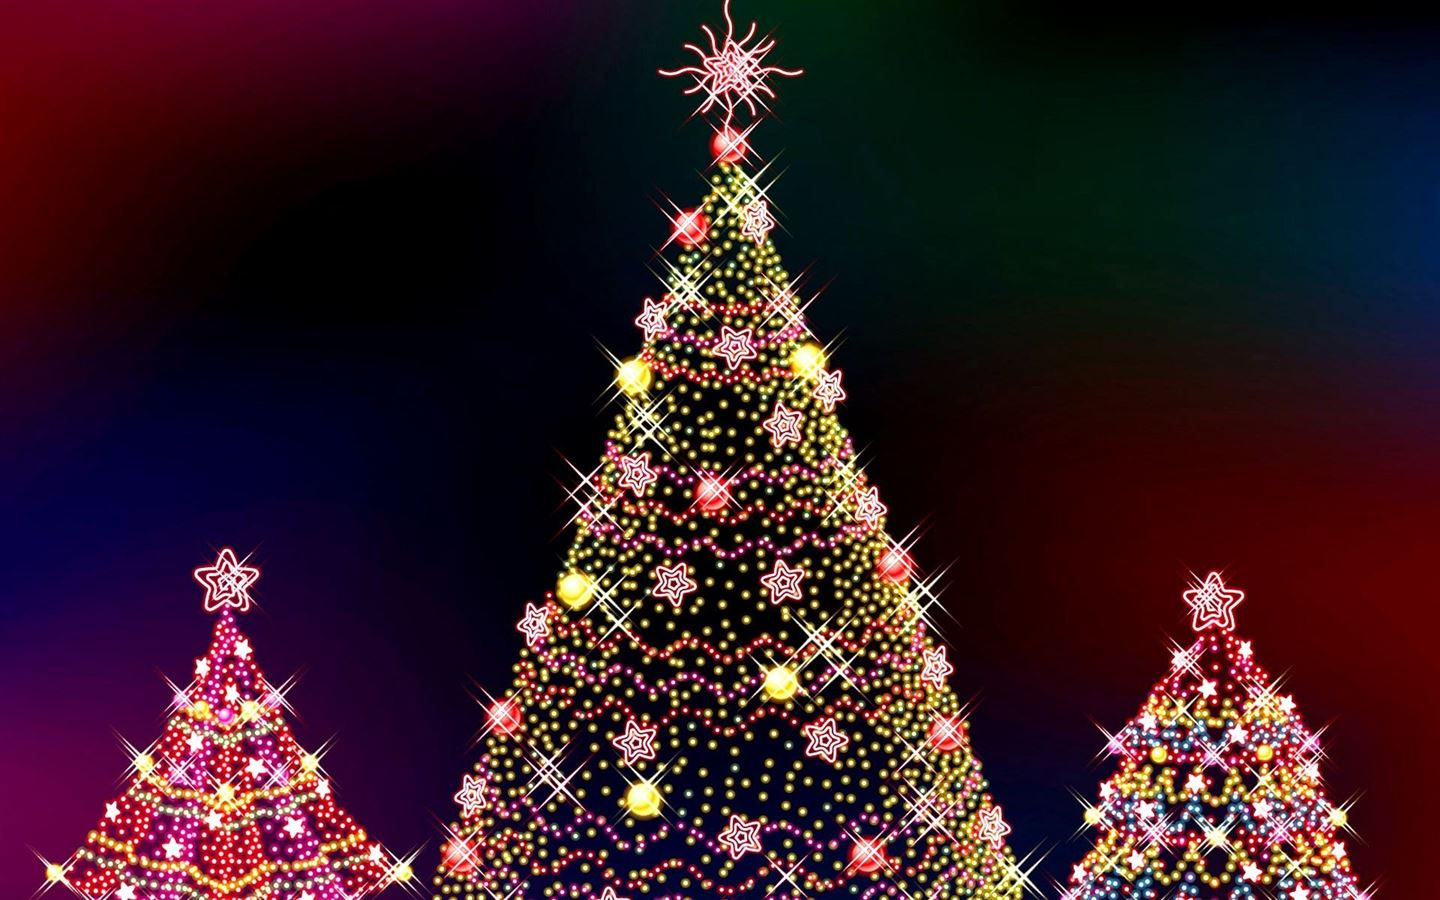 christmas wallpaper for macbook air – merry christmas and happy new